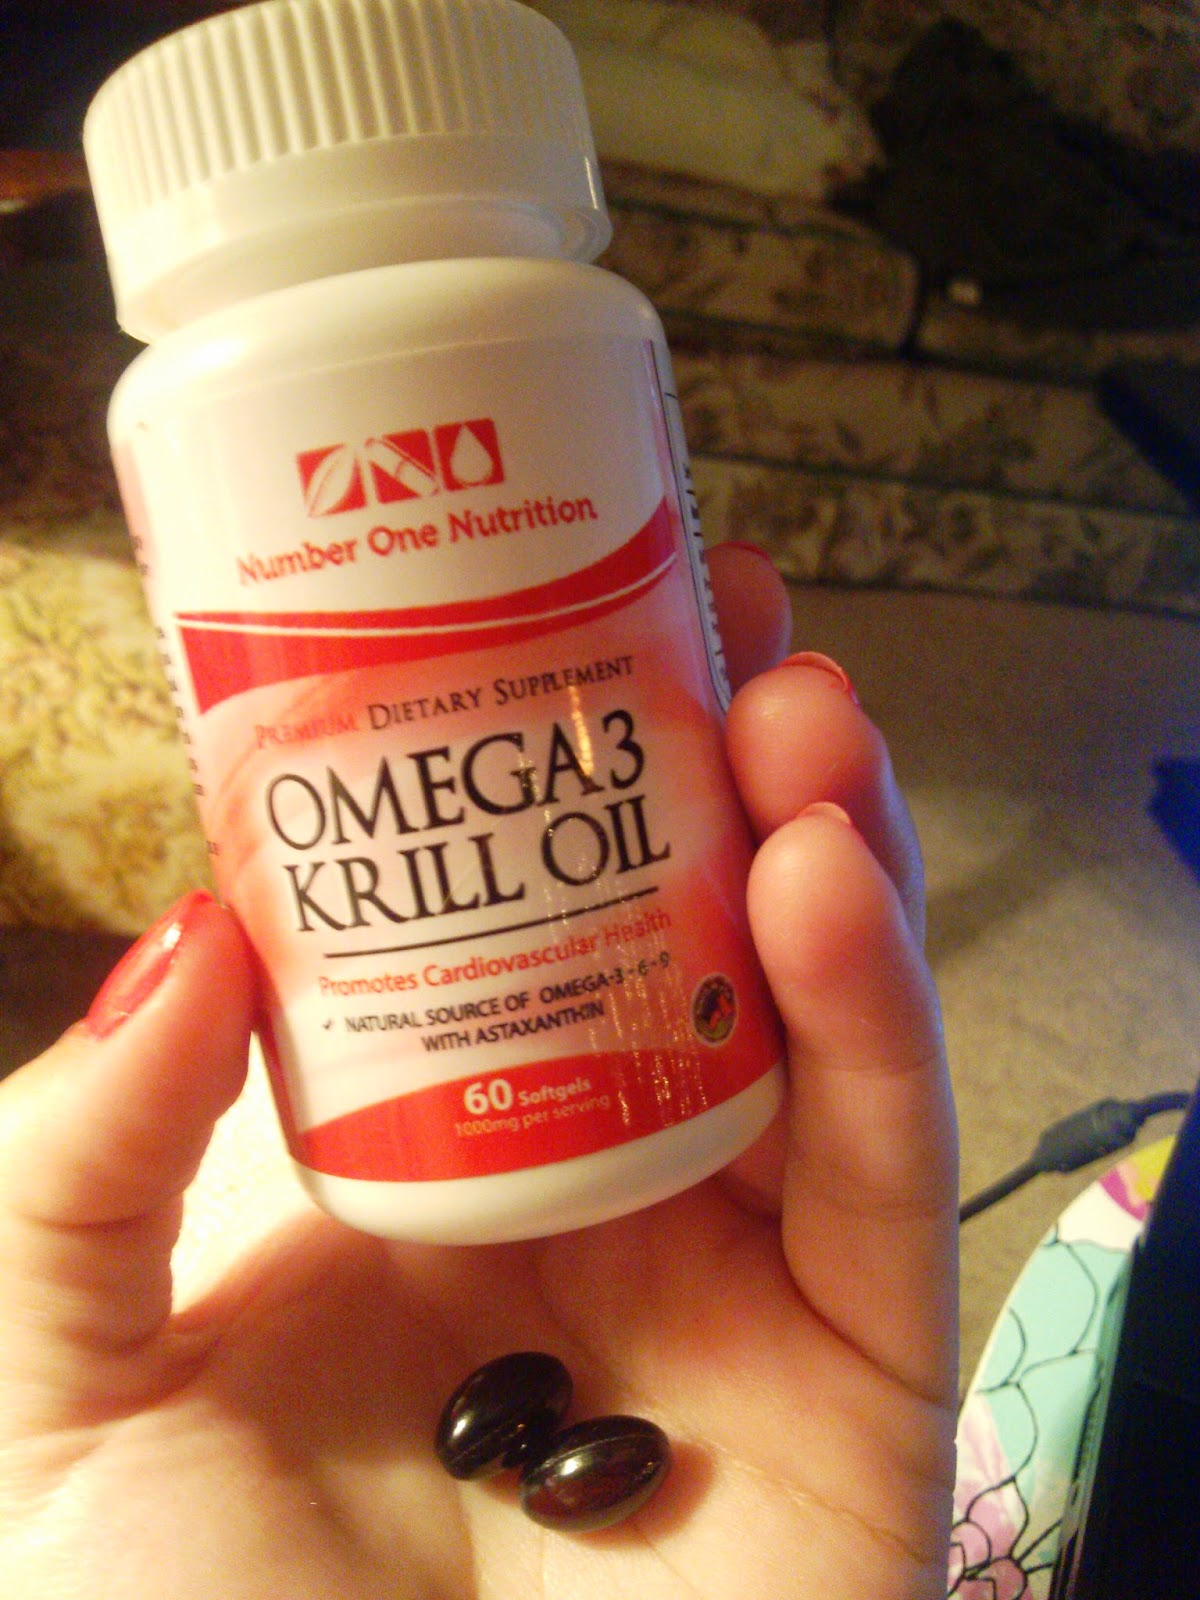 Number One Omega 3 Krill Oil Review